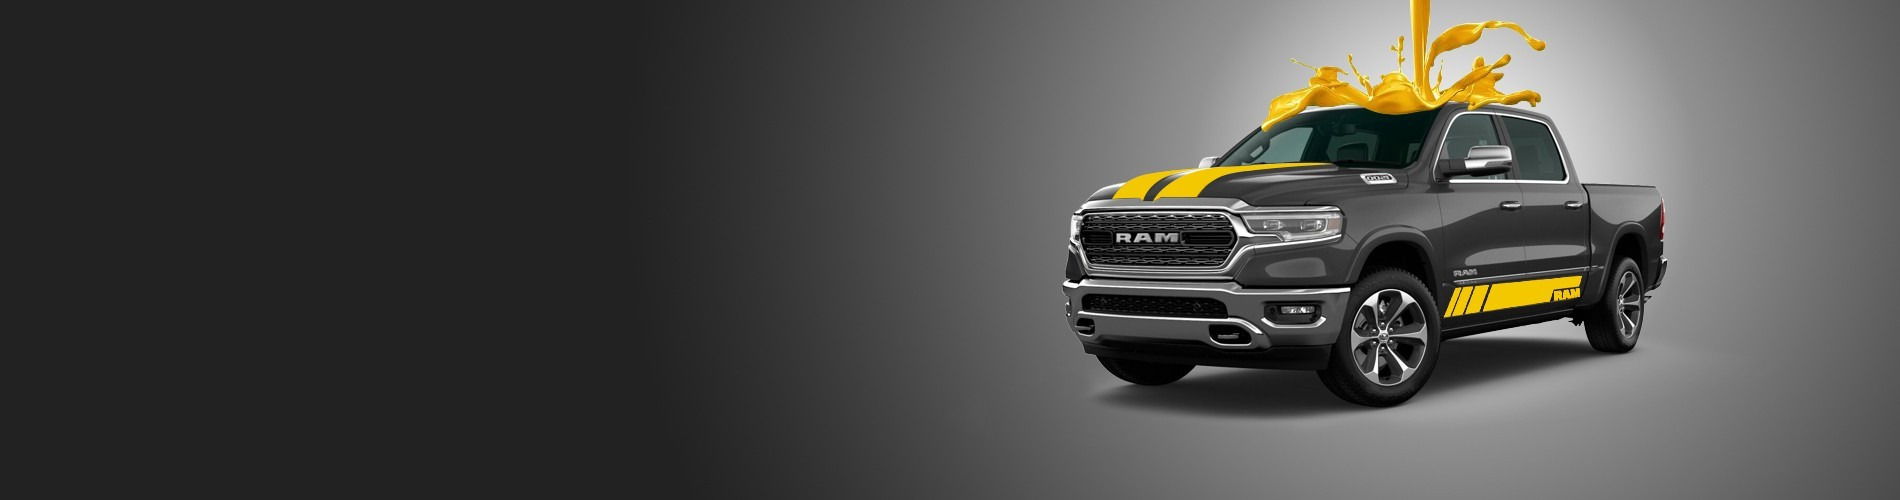 Ma Belle Voiture - Dodge Ram Stickers